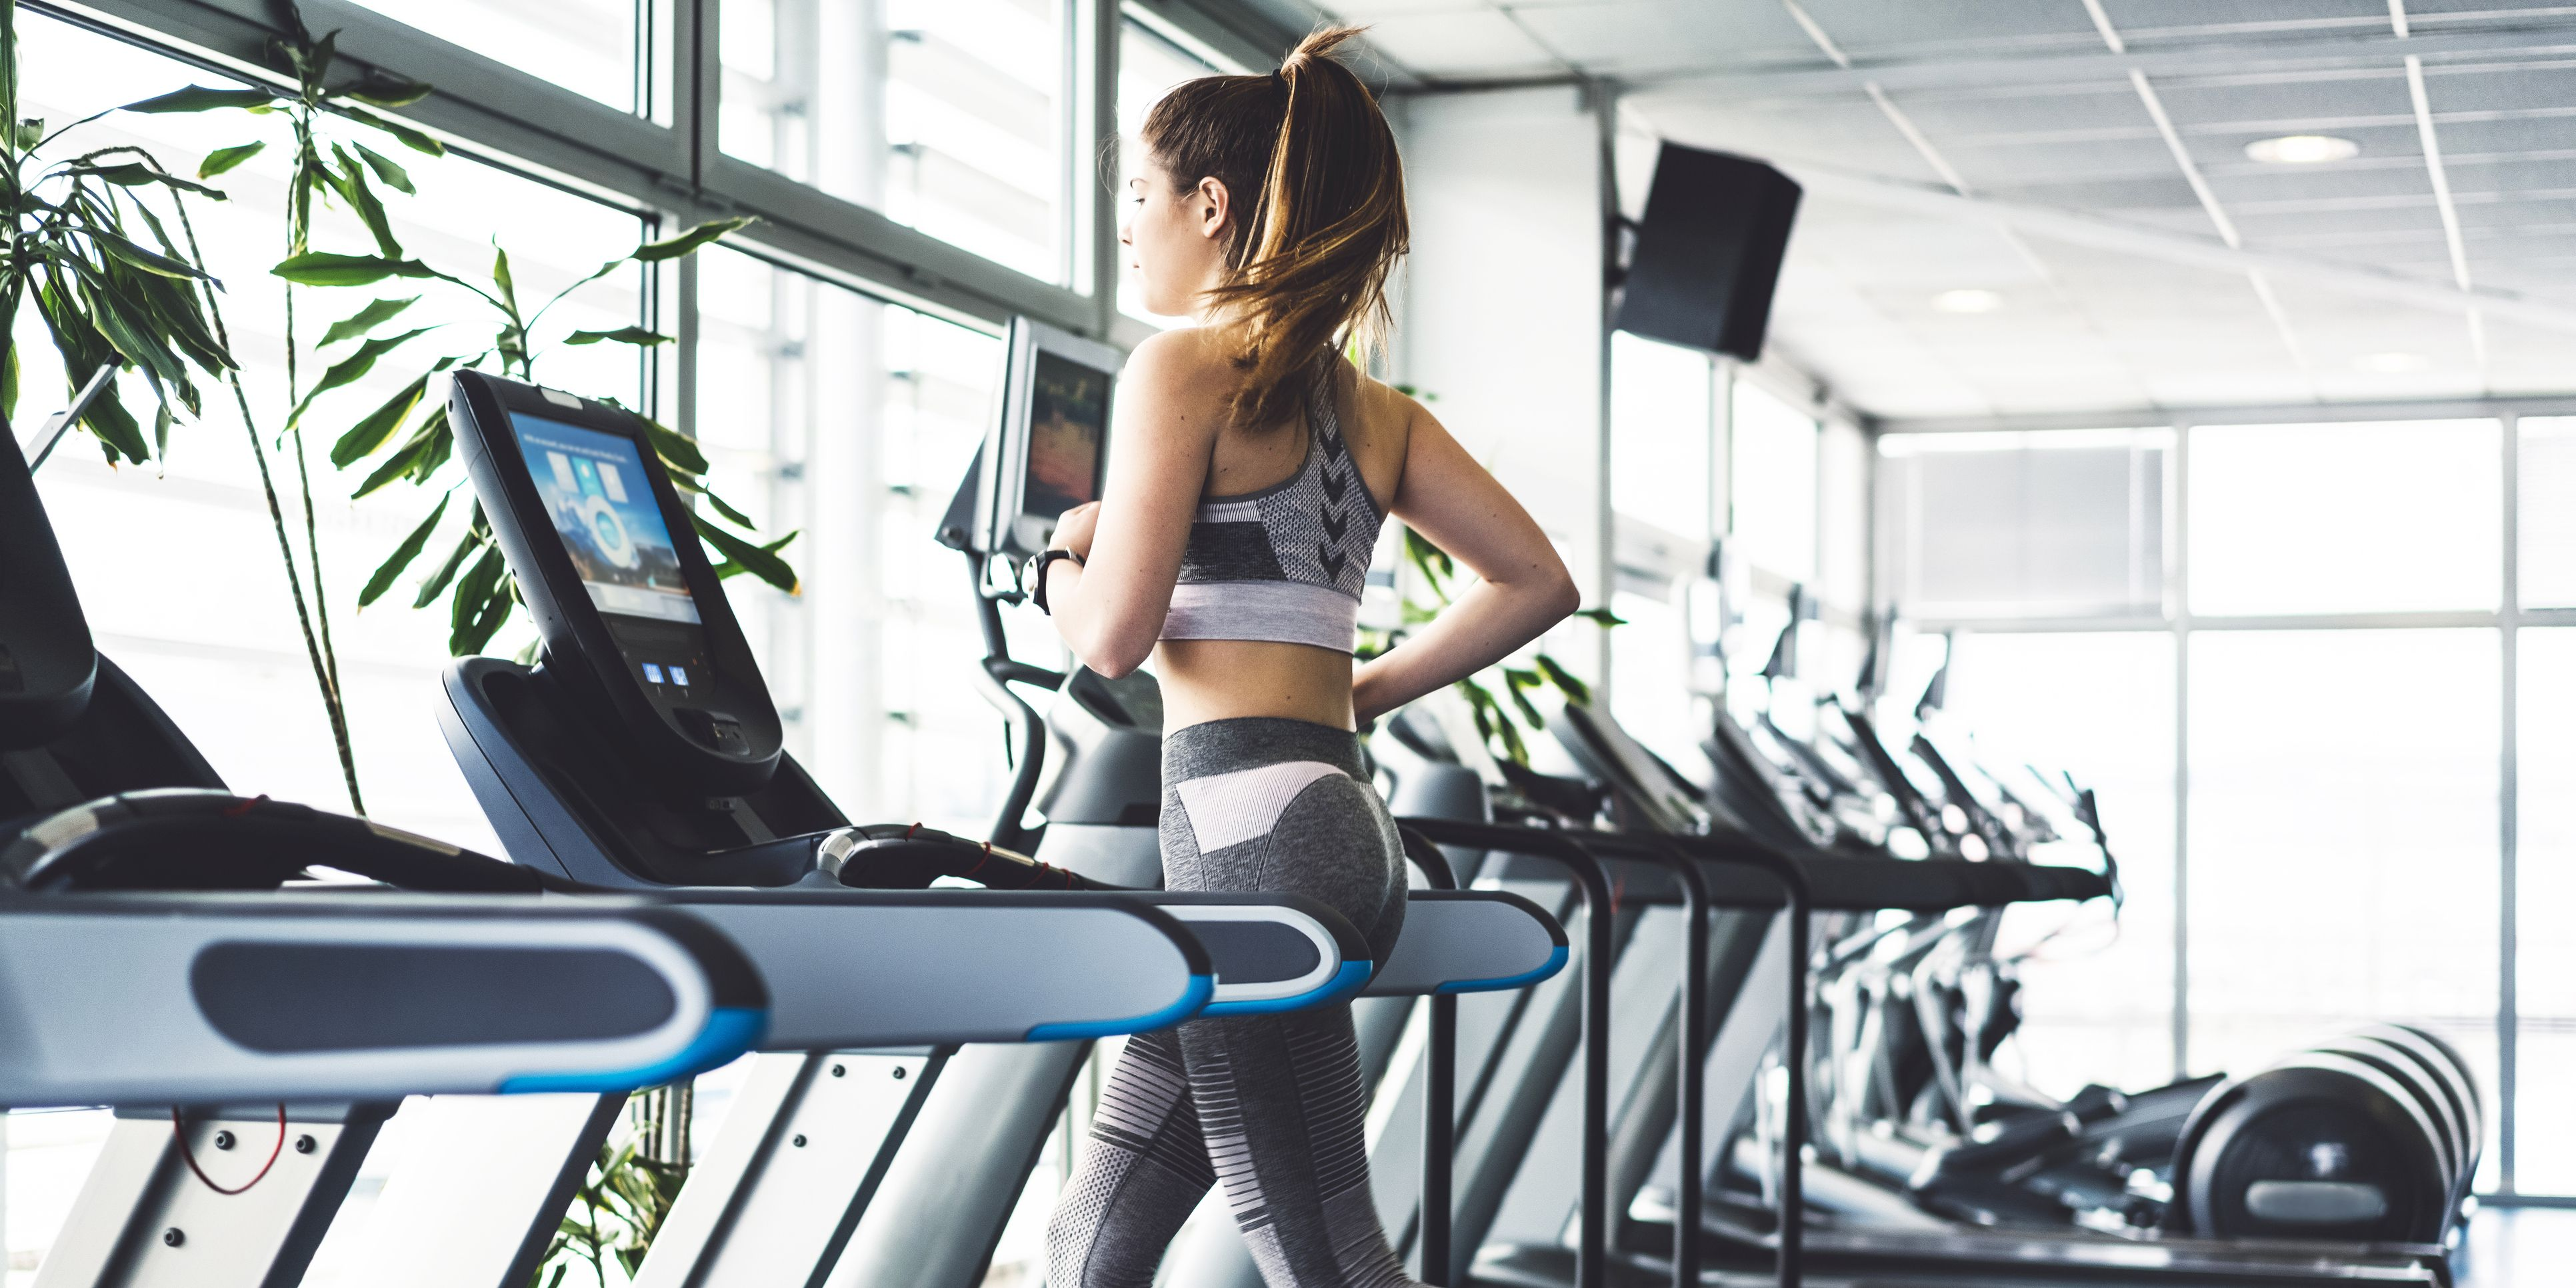 Fitness woman doing a cardio session on a treadmill